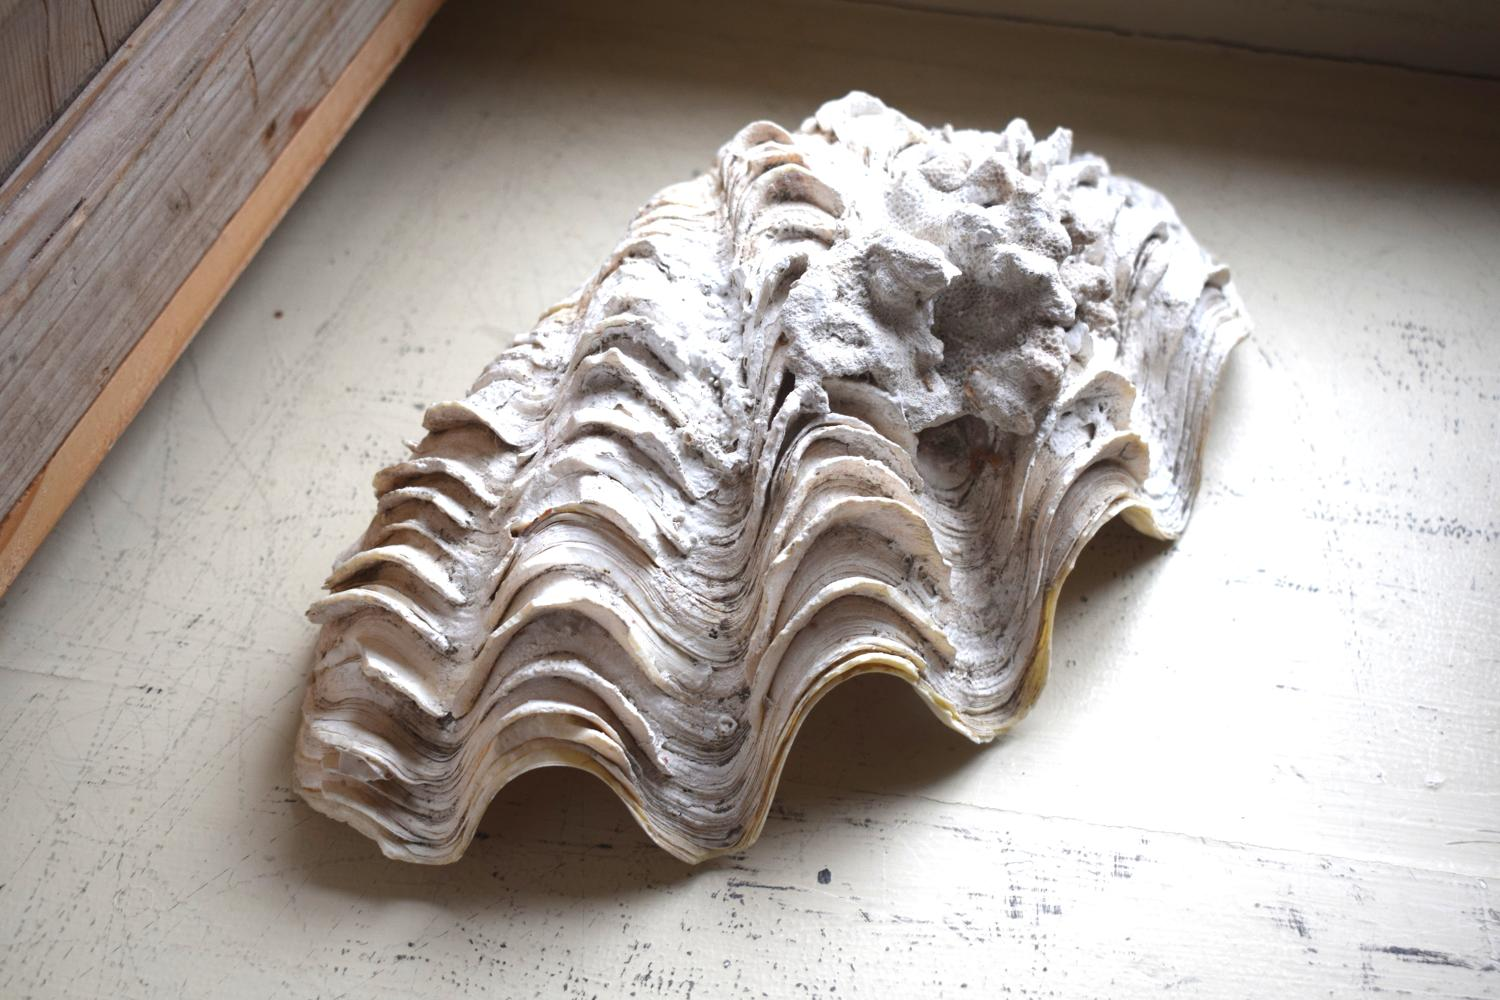 A clamshell with calcification